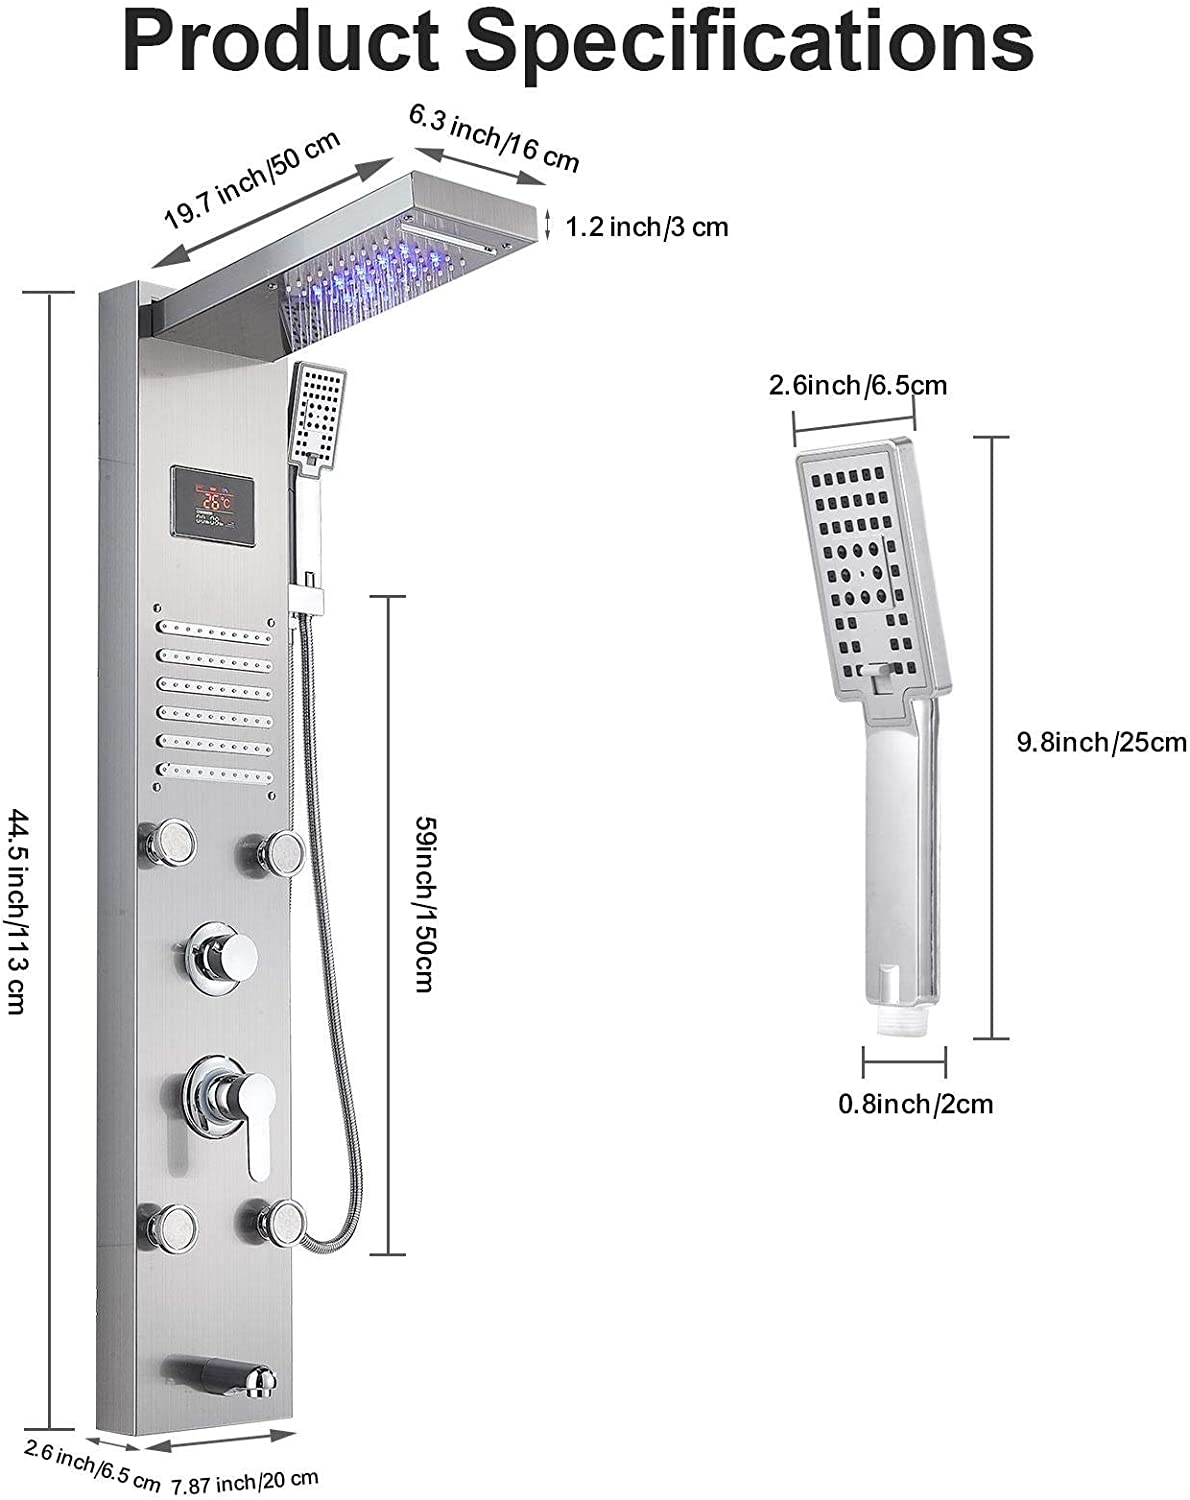 LED Shower Panel Tower System Shower Head Rain Massage System with 5 Body Jets Shower Column System Waterfall//Rainfall//Hand Shower//Body Jets Massage//Bathtub Spout and Temperature Display